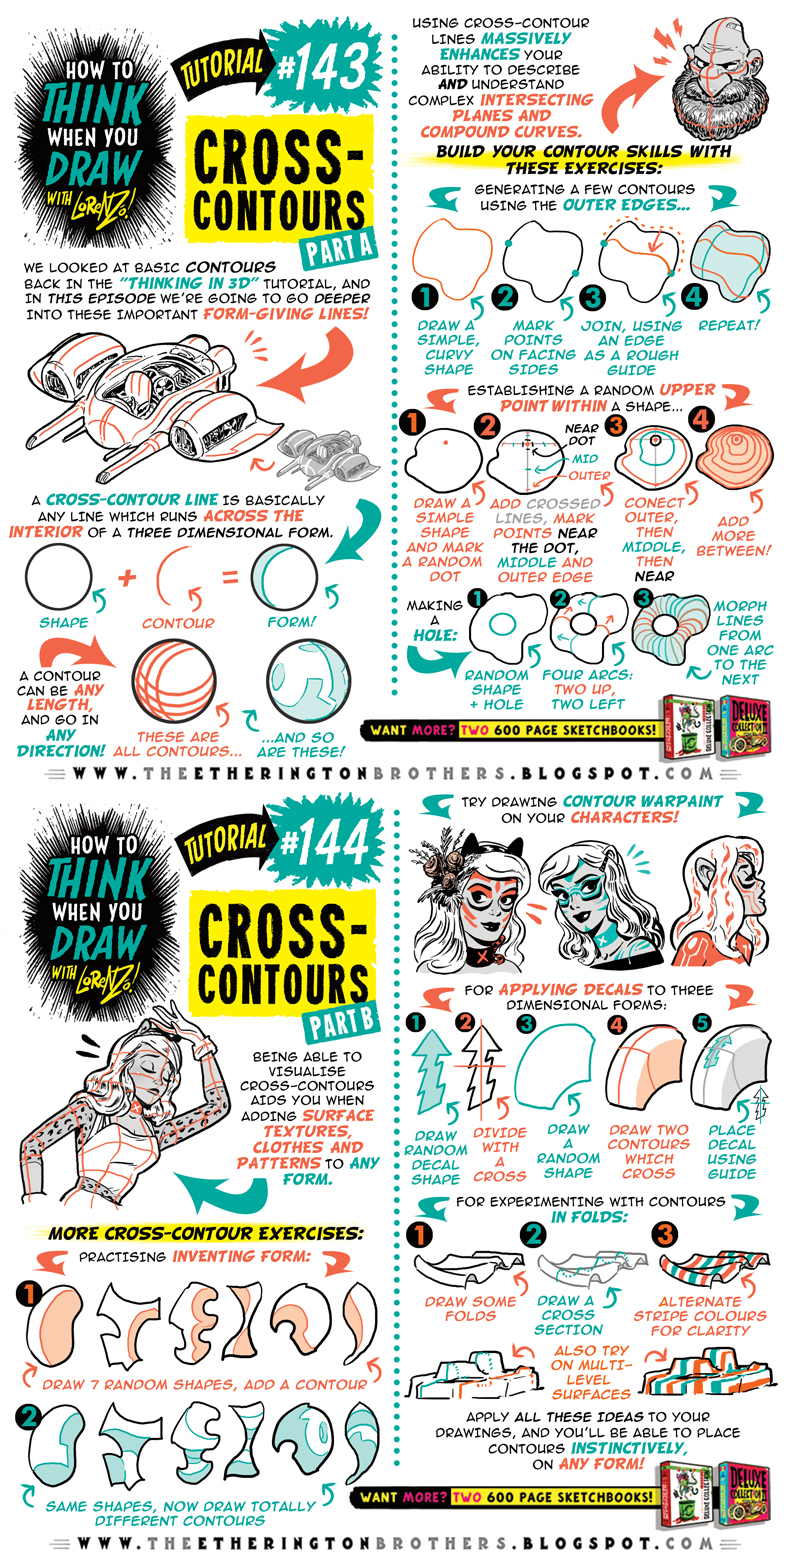 How to draw CROSS-CONTOURS tutorial by STUDIOBLINKTWICE